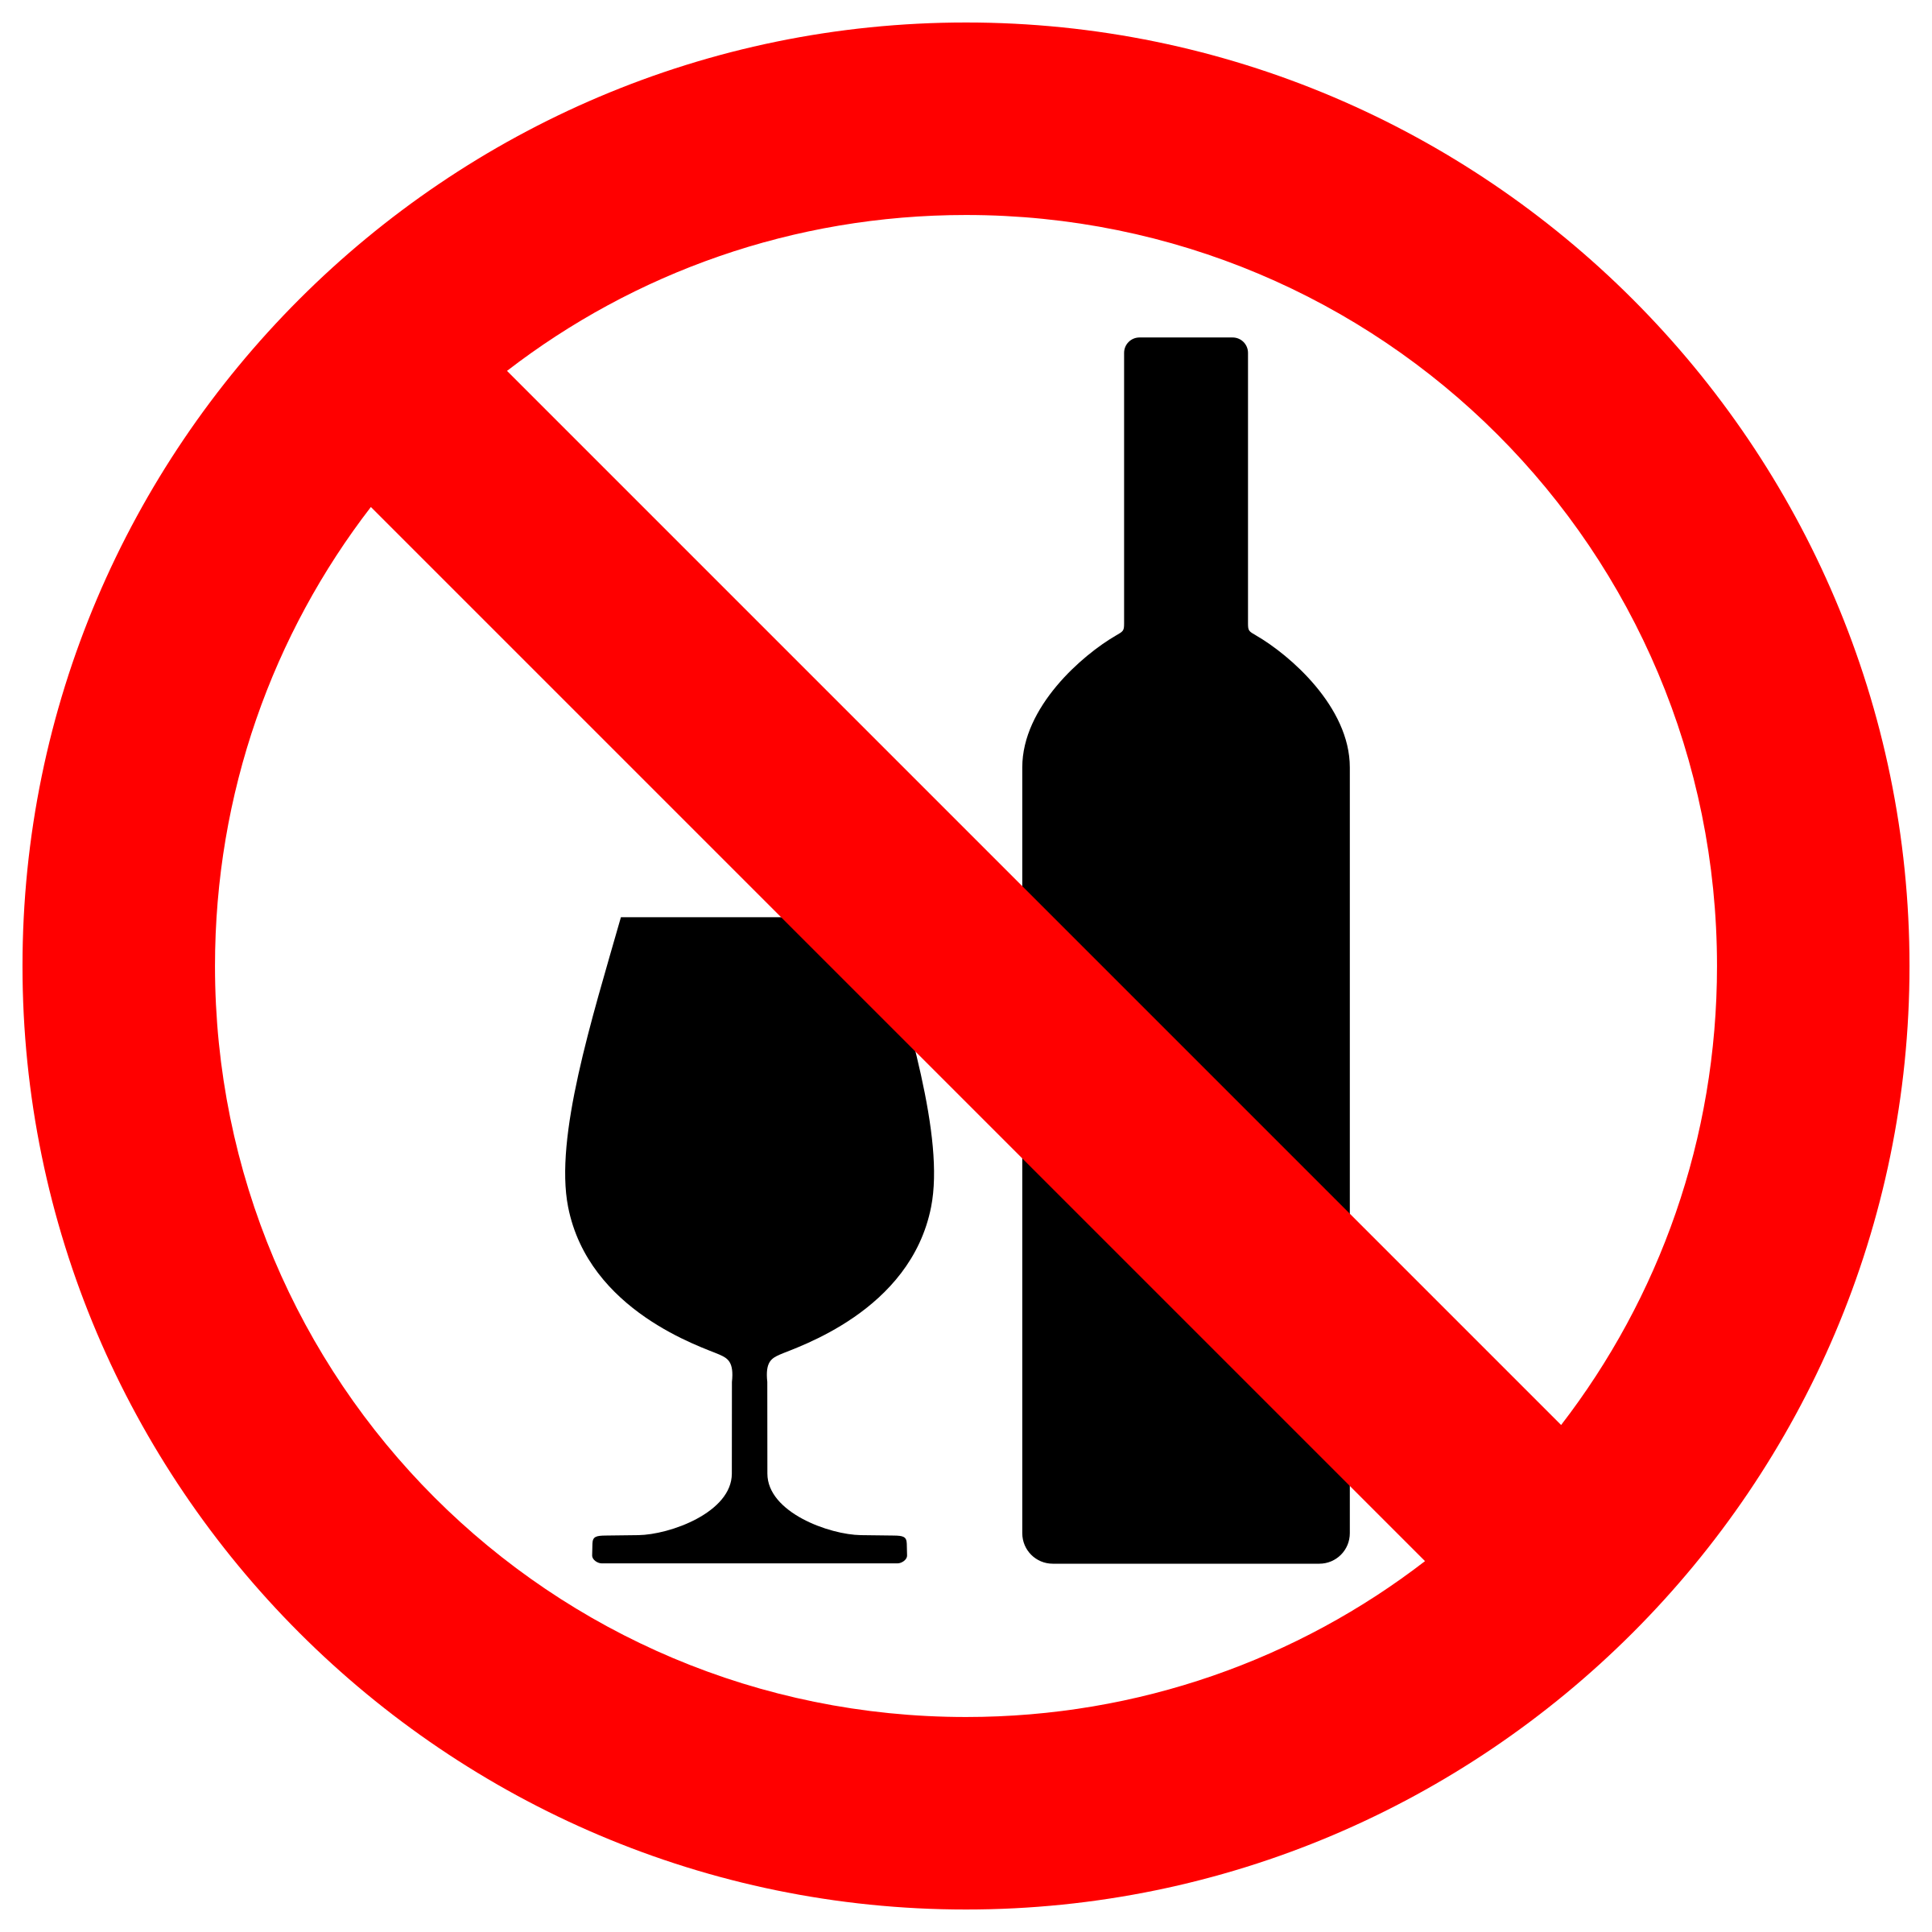 No alcohol png, Picture #373121 no alcohol png.